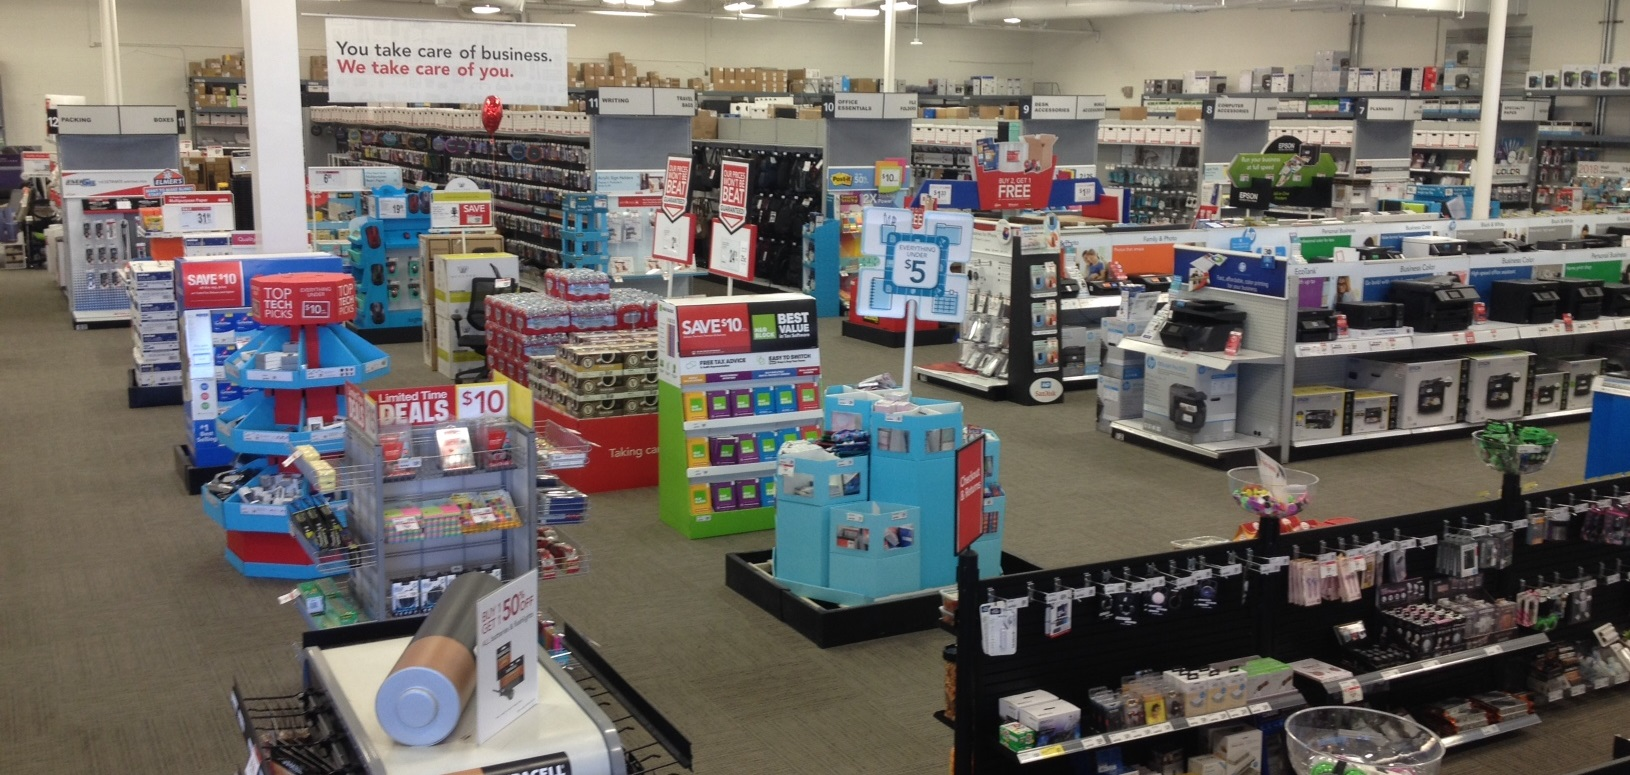 Office Depot image 2